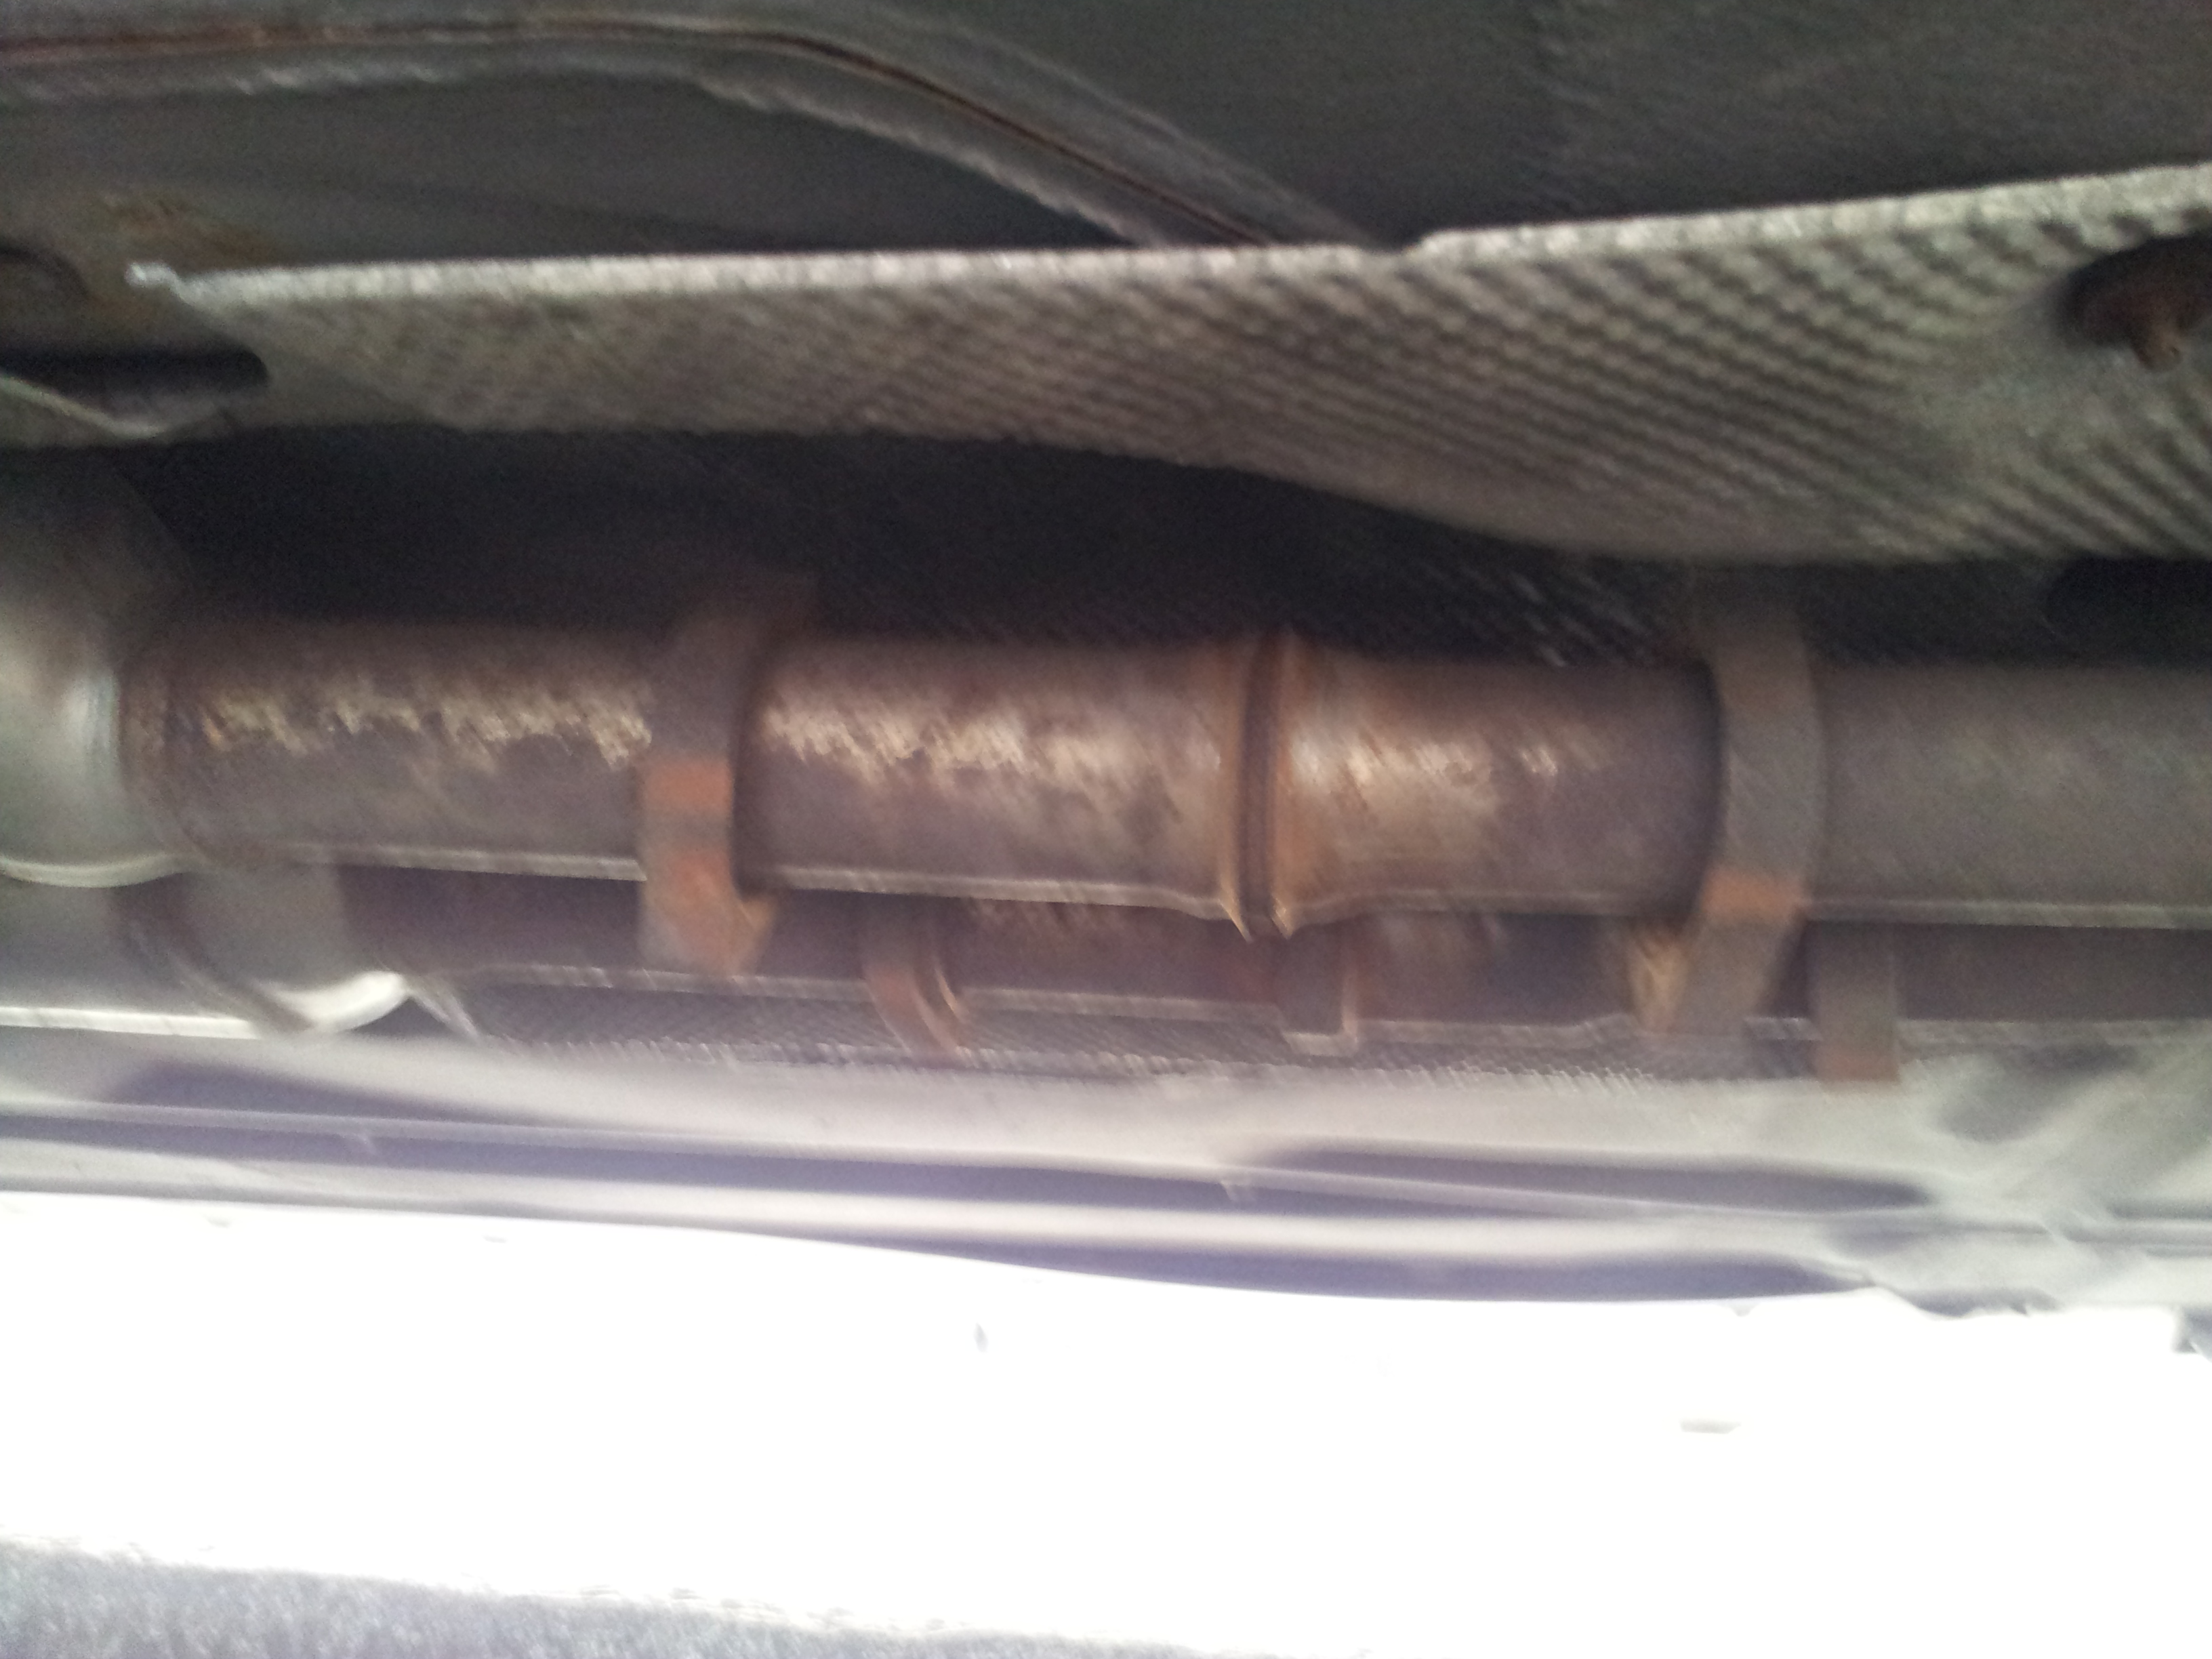 2003 honda crv exhaust system diagram 1997 ford f350 headlight switch wiring mercedes benz w210 engine cover free